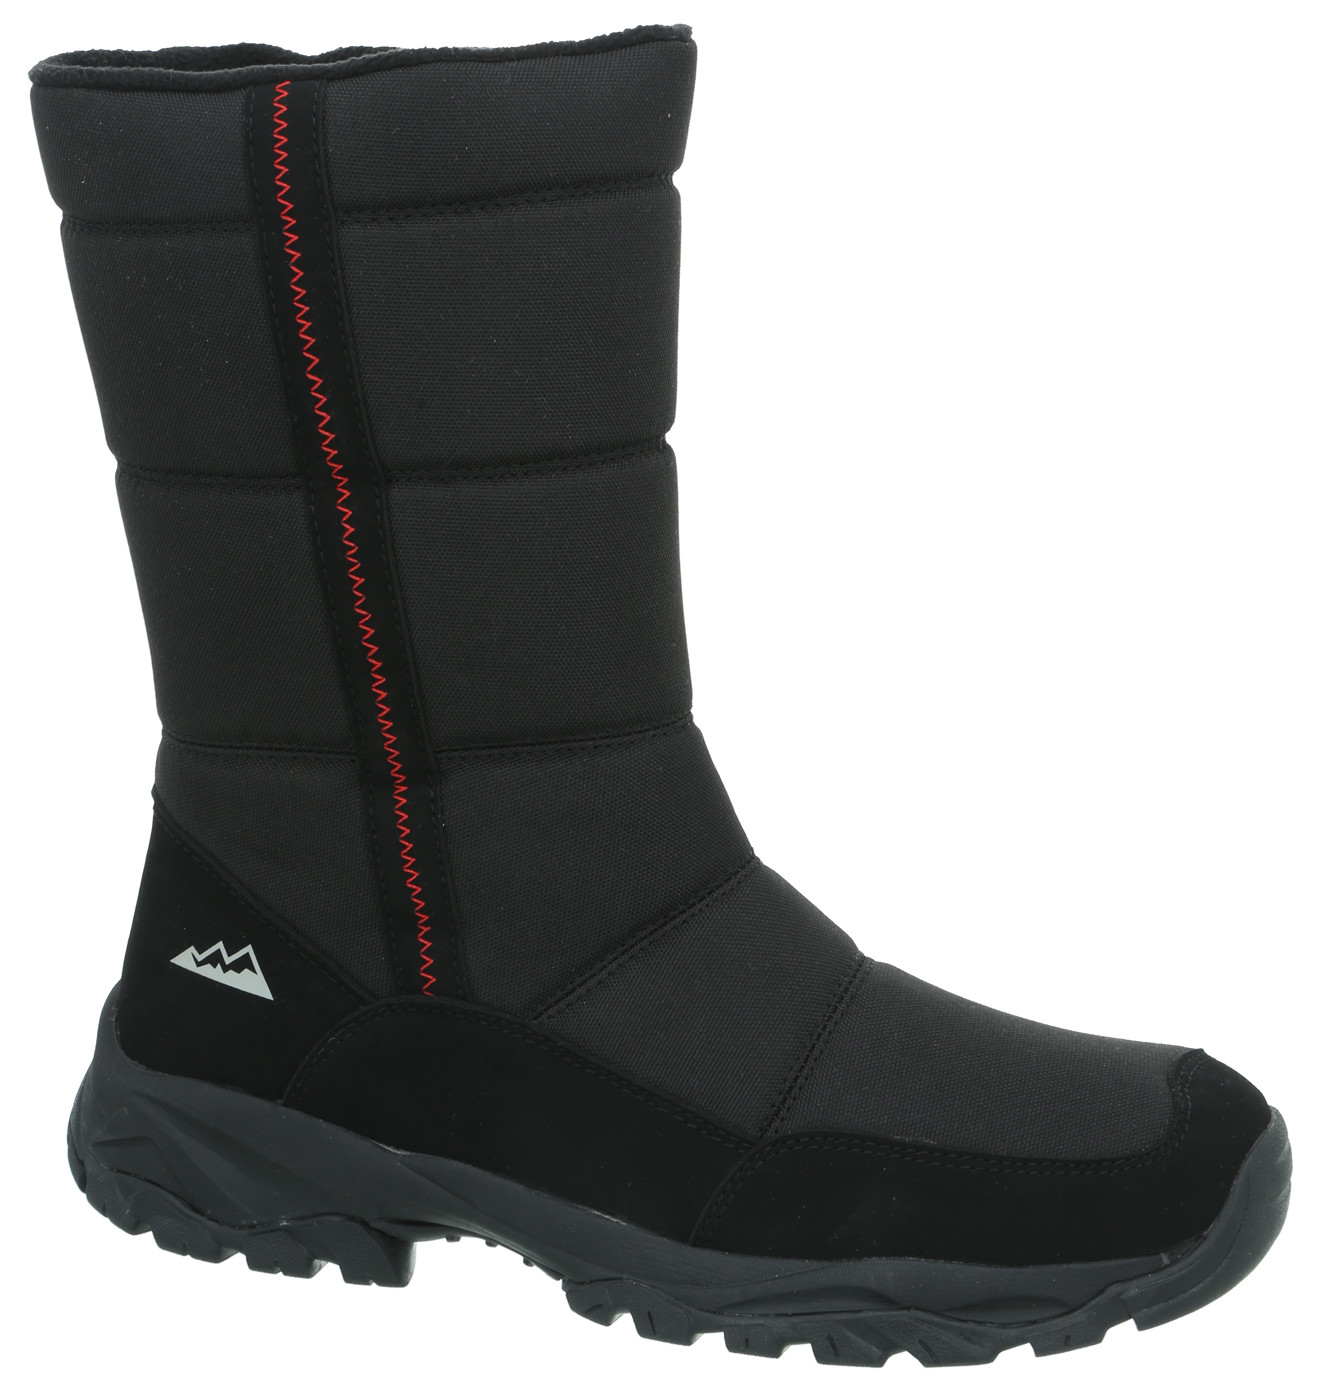 HIGH COLORADO Winterboots POLAR UNISEX